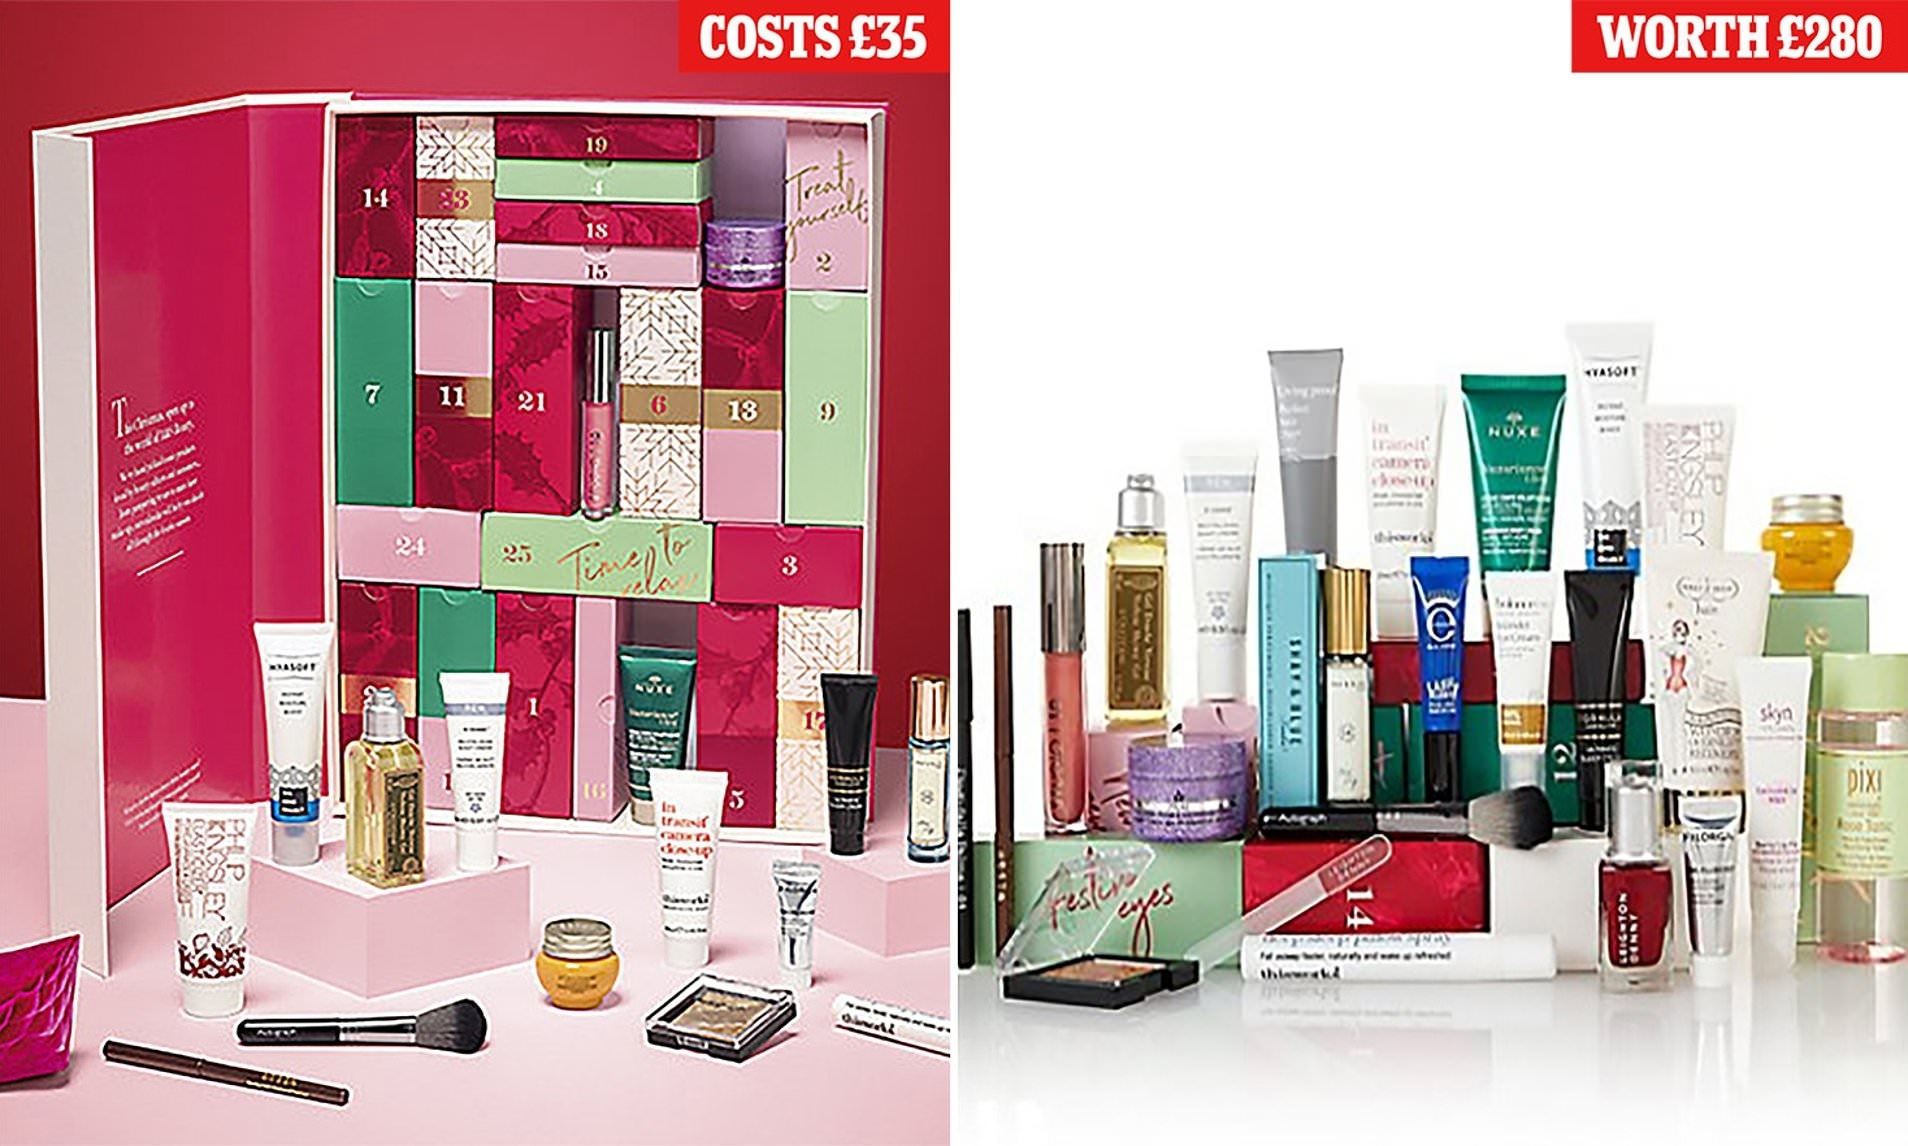 35 M&s Beauty Advent Calendar Contains £280 Of Beauty